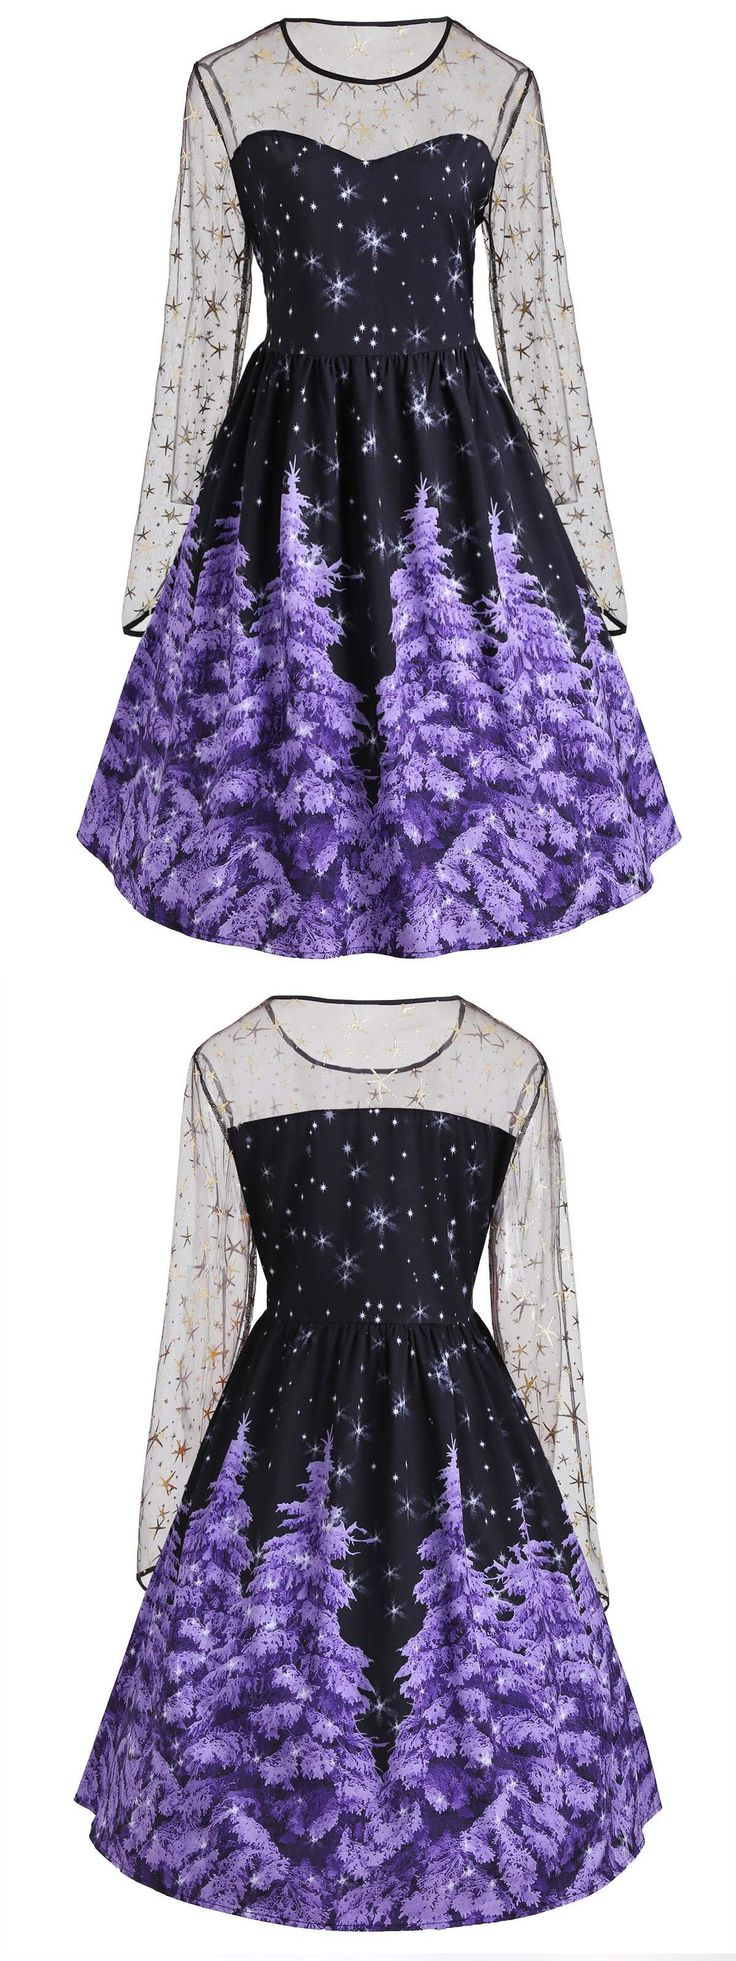 Up to 80% off,Wholesale Plus Size Mesh Insert Christmas Tree And Star Print Dress 5xl Purple Online. Cheap Plus Size Summer Dress And Christmas Plus Size Sweater on Rosewholesale.com,rosewholesale,rosewholesale.com,rosewholesale clothing,rosewholesale dress plus size,christmas dress,purple,christmas crafts,christmas decor diy,christmas gifts,Christmas dress for women,extra 10% off coupon code:HALLOWEEN